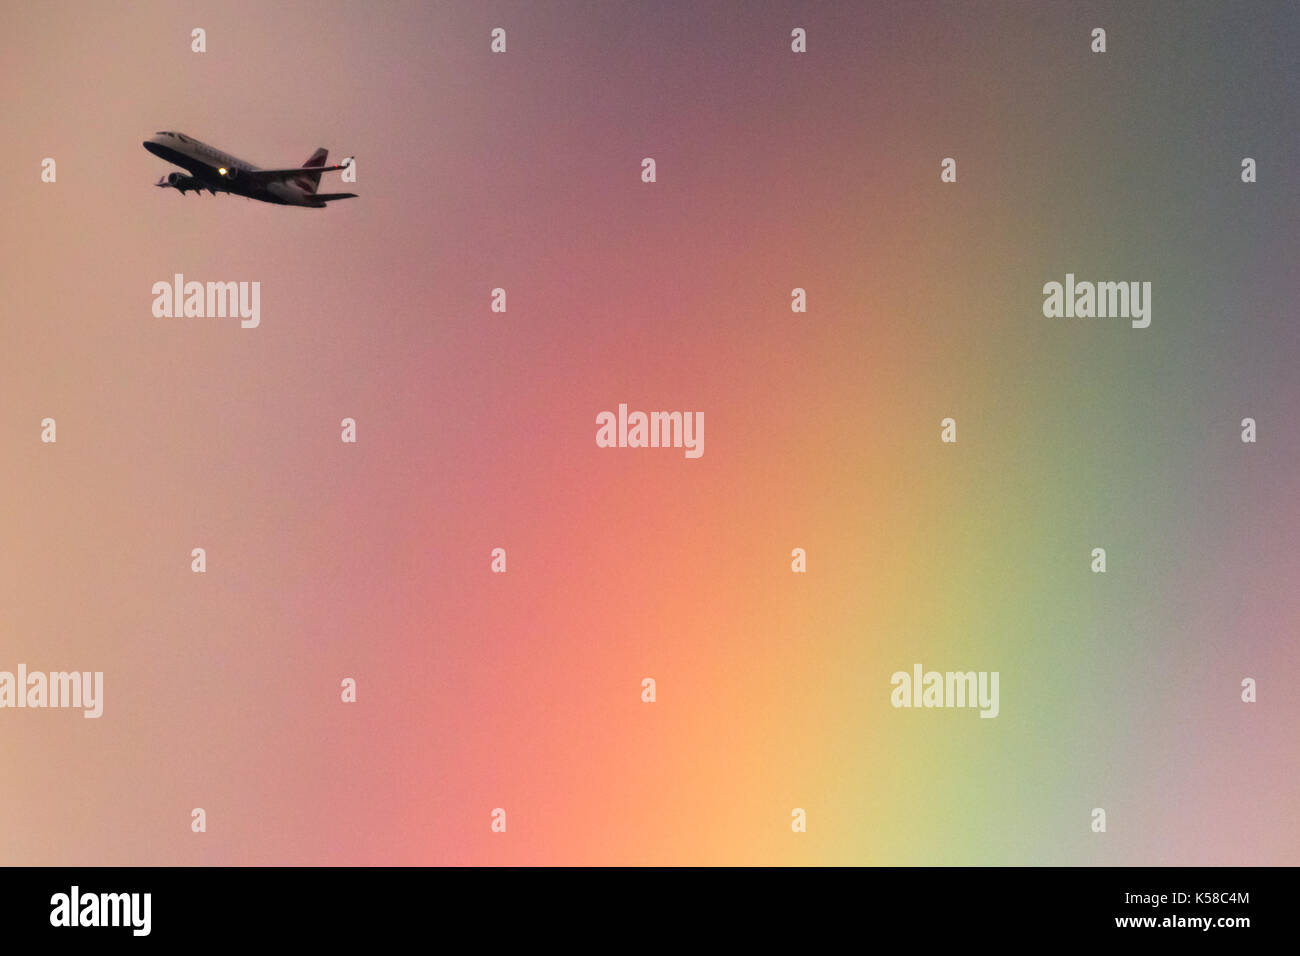 London, UK. 8th Sep, 2017. UK Weather: A British Airways passenger plane leaving City Airport passes through a sunset rainbow over the city. Credit: Guy Corbishley/Alamy Live News - Stock Image